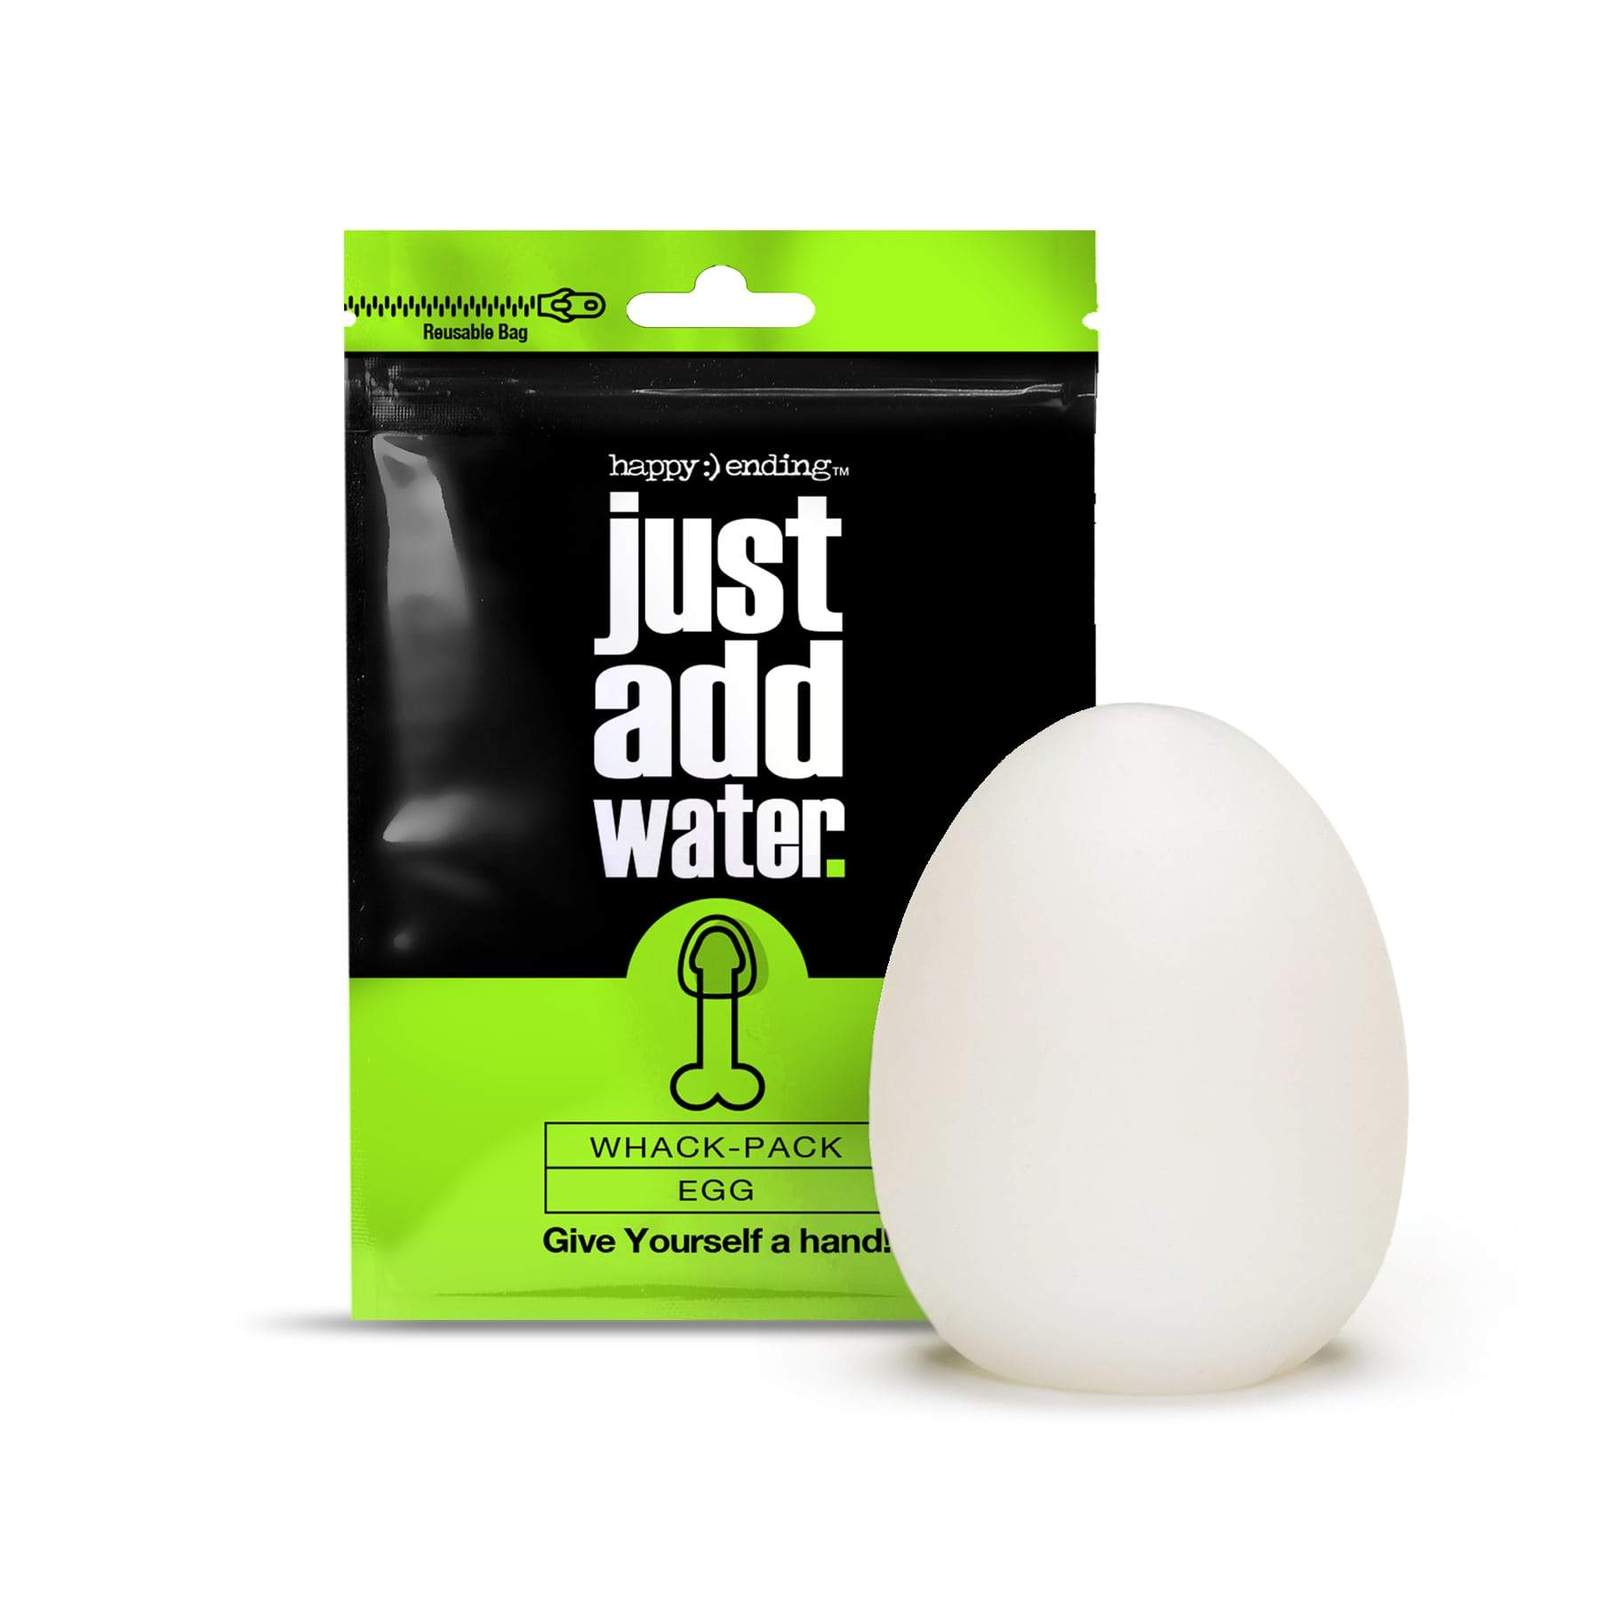 Just Add Water Whack Pack Stroker For Him 3 Pack - Egg